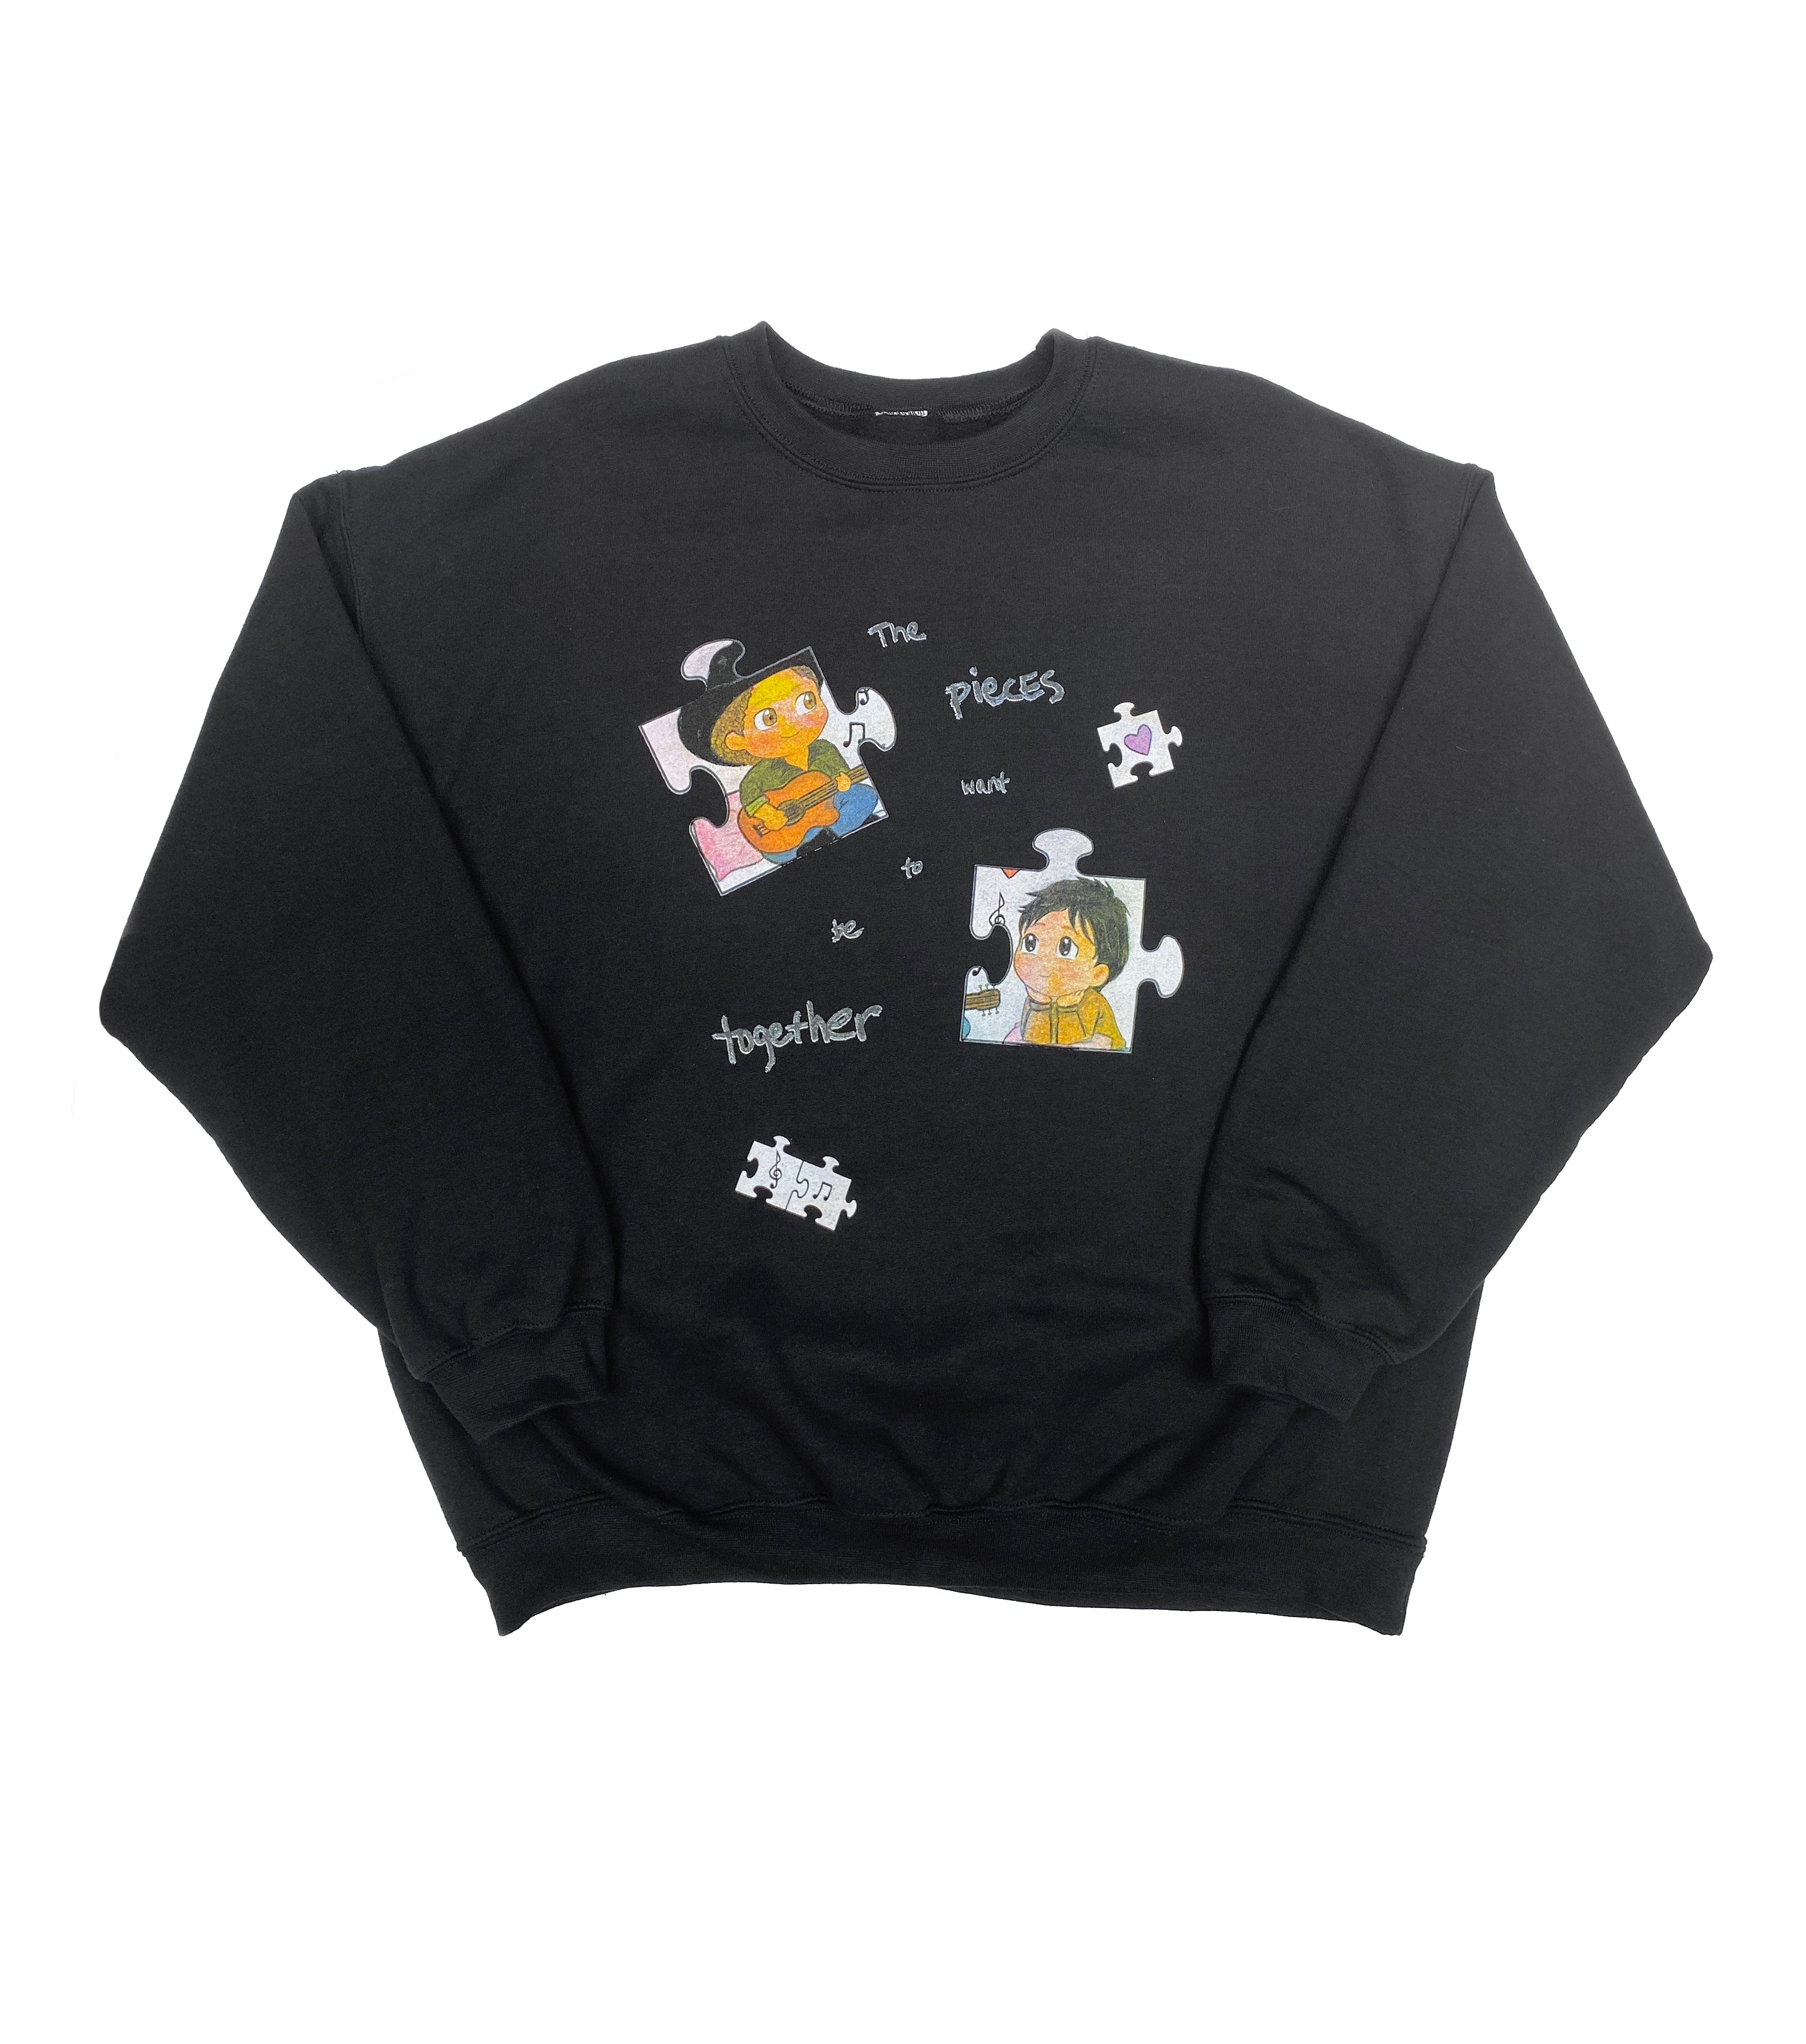 THE PIECES WANT TO BE TOGETHER CREW NECK SWEATSHIRT BLACK